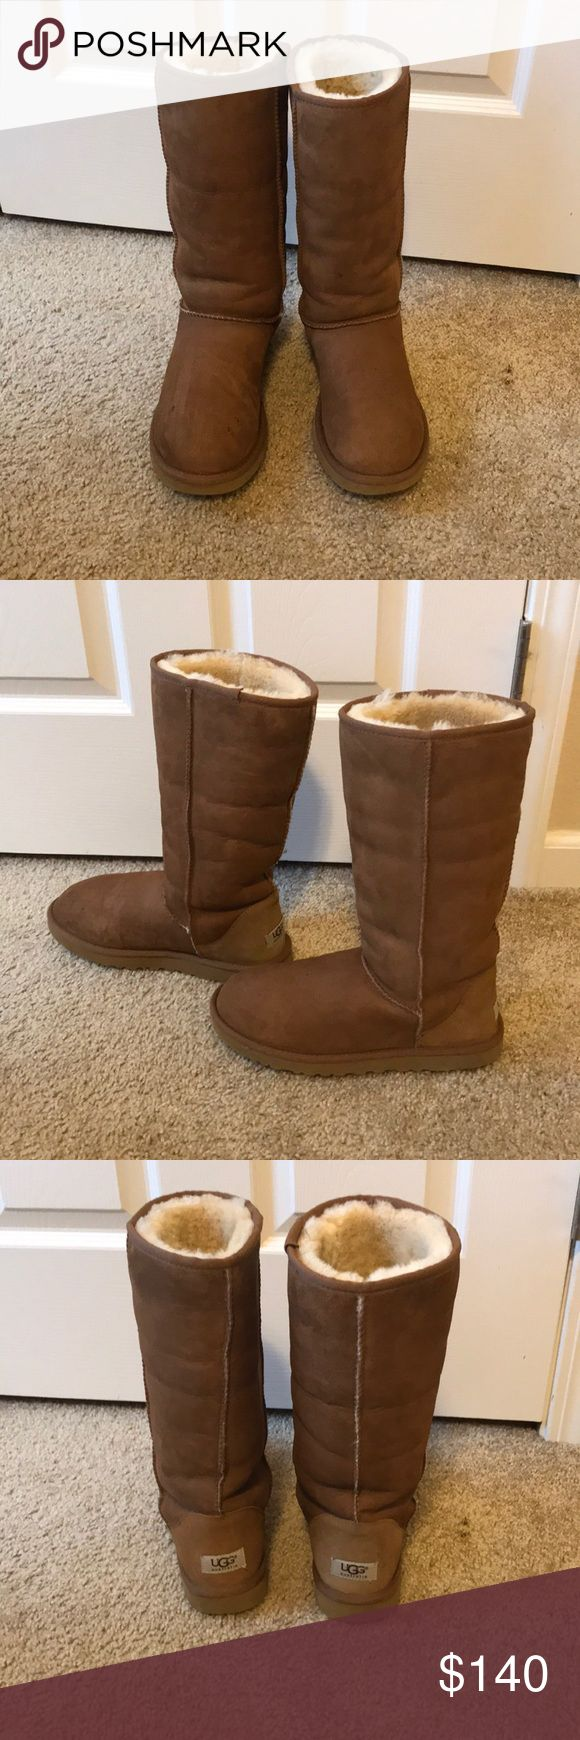 Ugg classic tall boots in chestnut Ugg classic tall boots in chestnut. Great used condition. Super cute folded down with fur showing. A few seasons old, but only worn a handful of times. Recently cleaned and sprayed with ugg water-proof protectant. No water marks or damage. UGG Shoes Winter & Rain Boots #watershoes